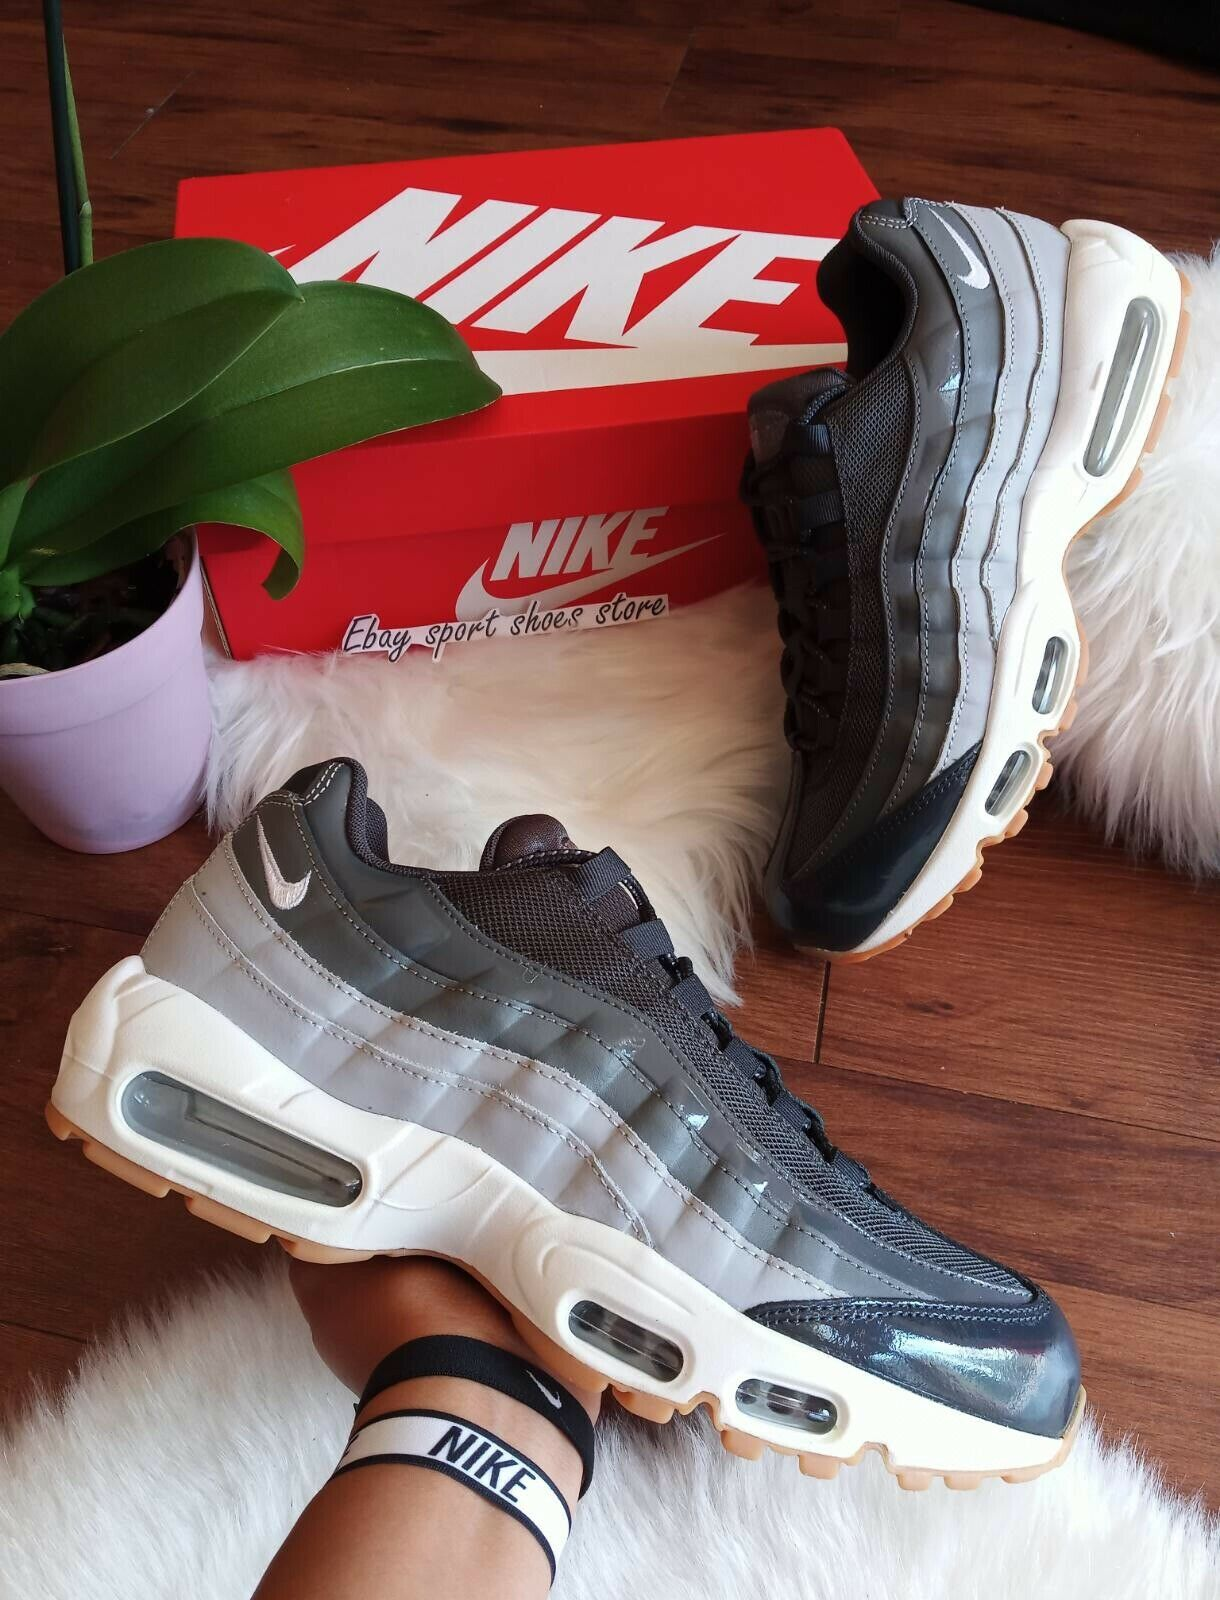 11 Femme   9.5 Hommes NIKE AIR MAX 95 Wolf gris 307960 012 Athletic chaussures